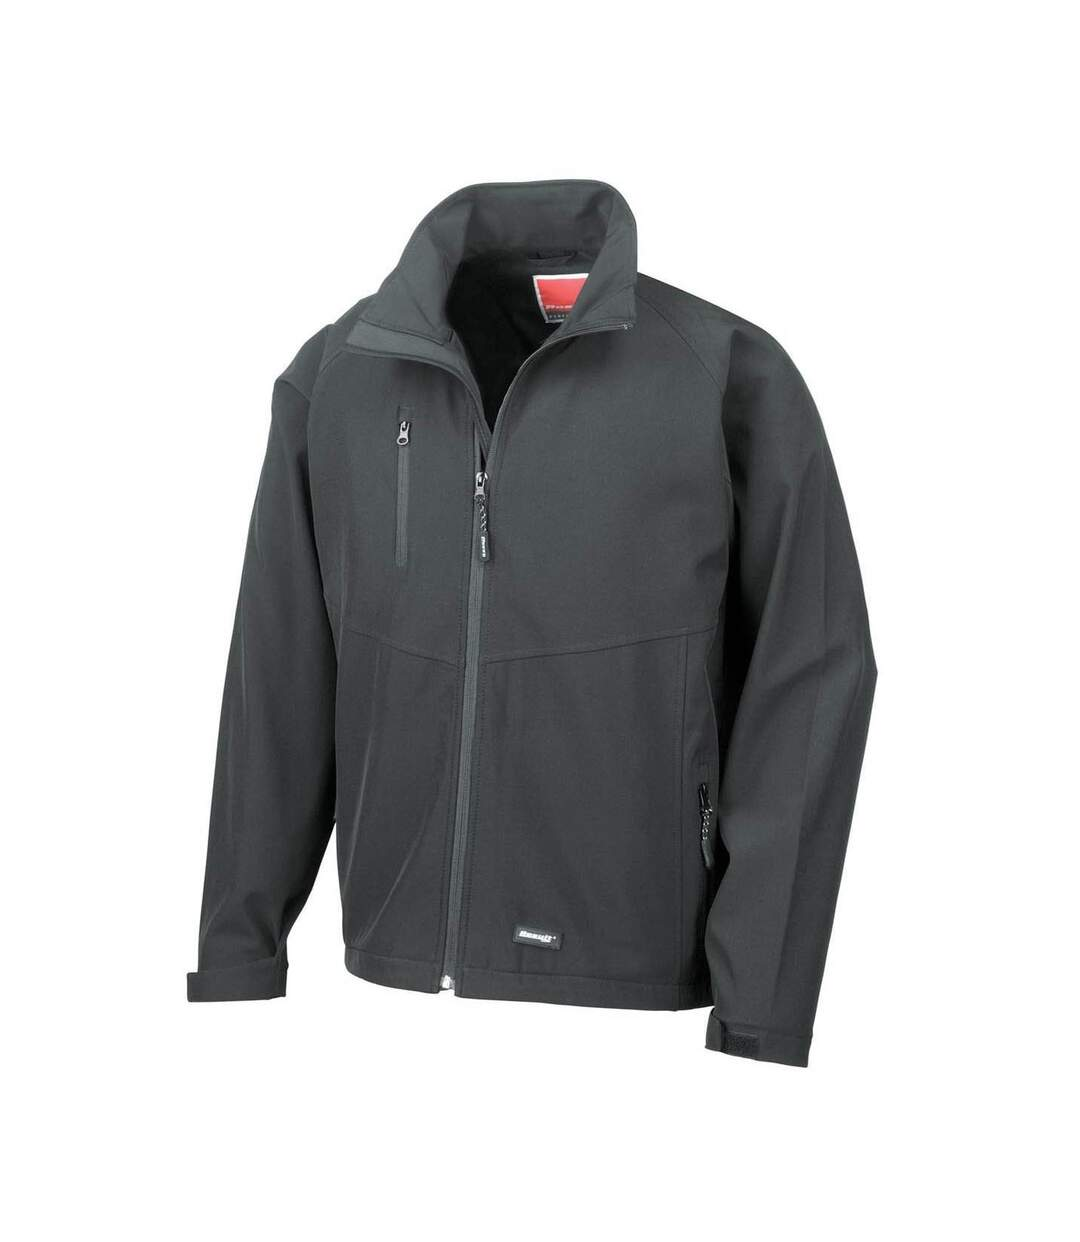 Result Mens 2 Layer Base Softshell Breathable Wind Resistant Jacket (Navy Blue) - UTBC864